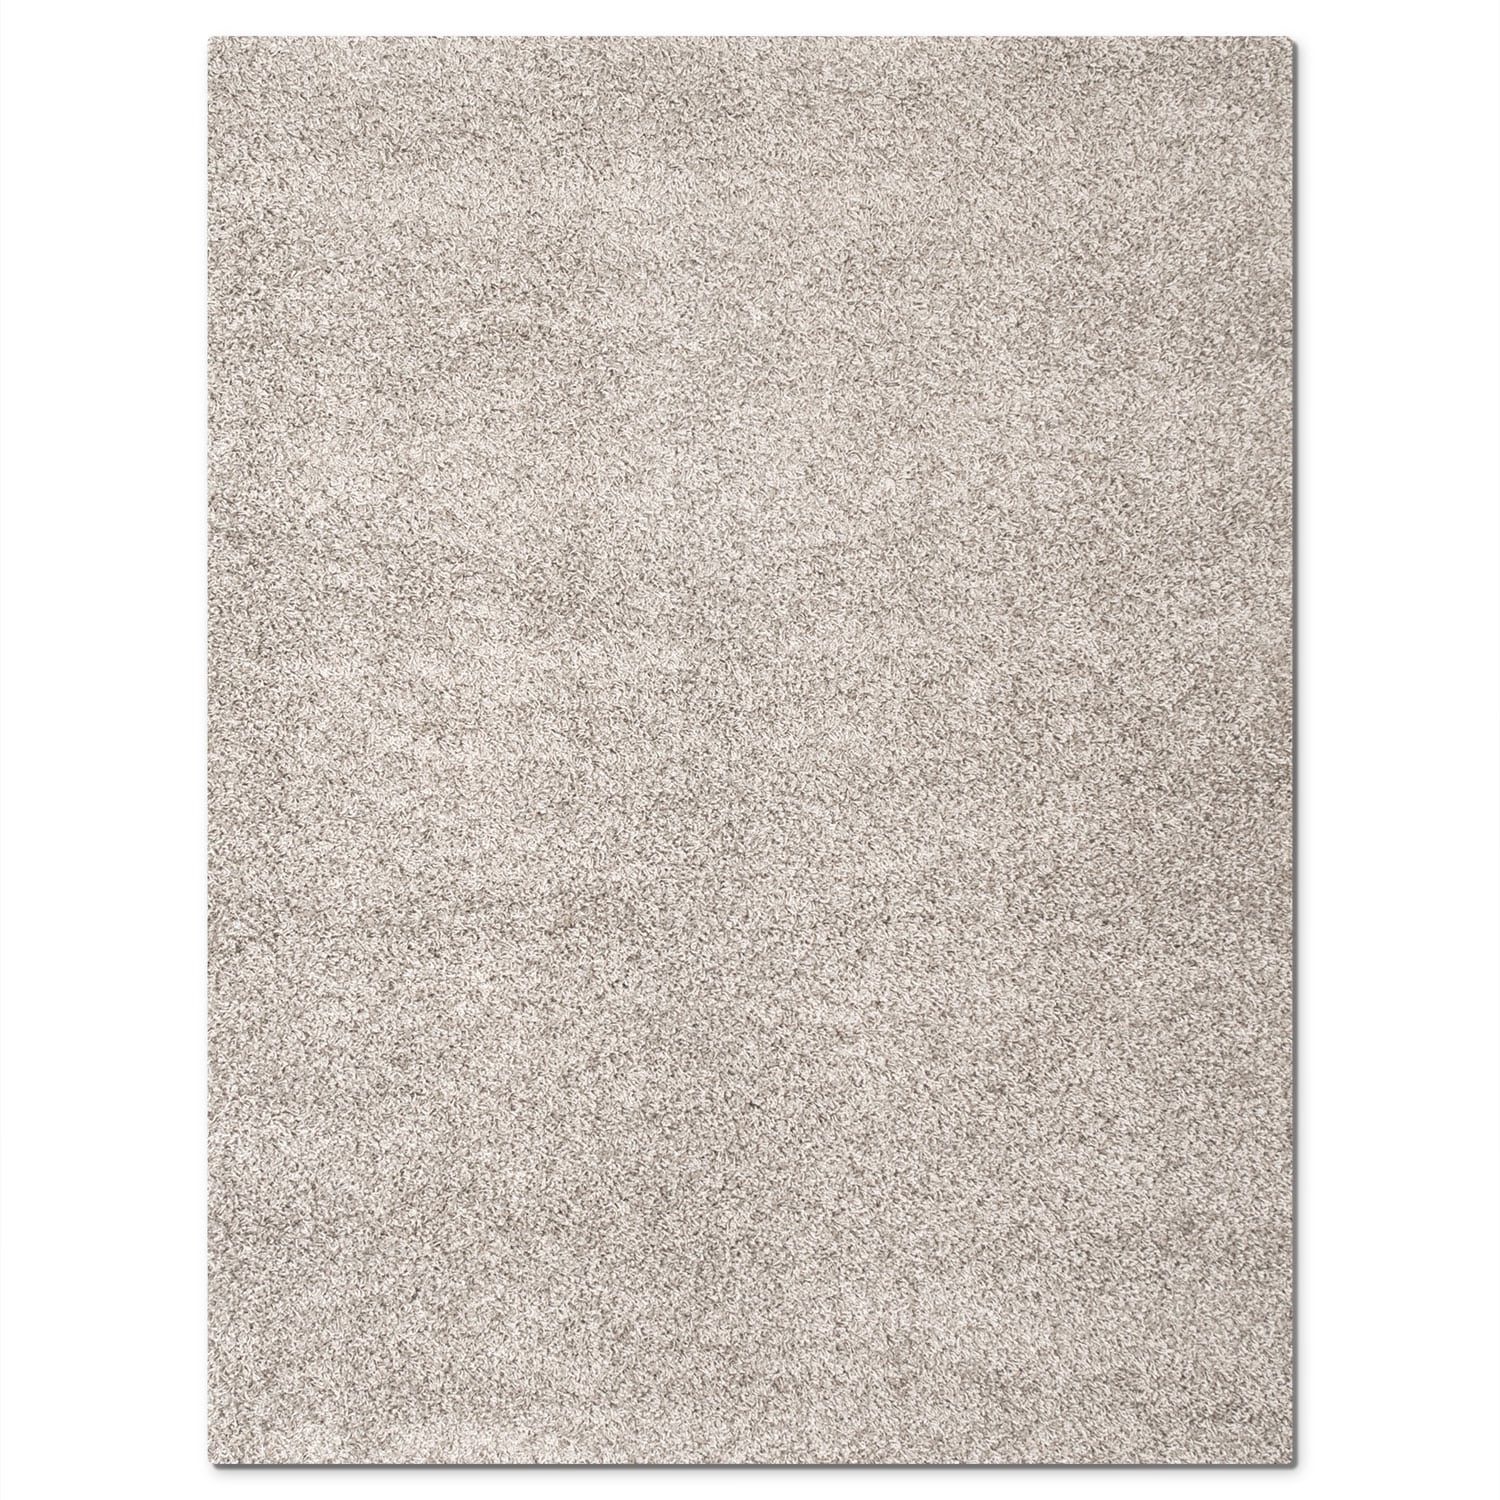 Rugs - Domino Shag Area Rug - Gray